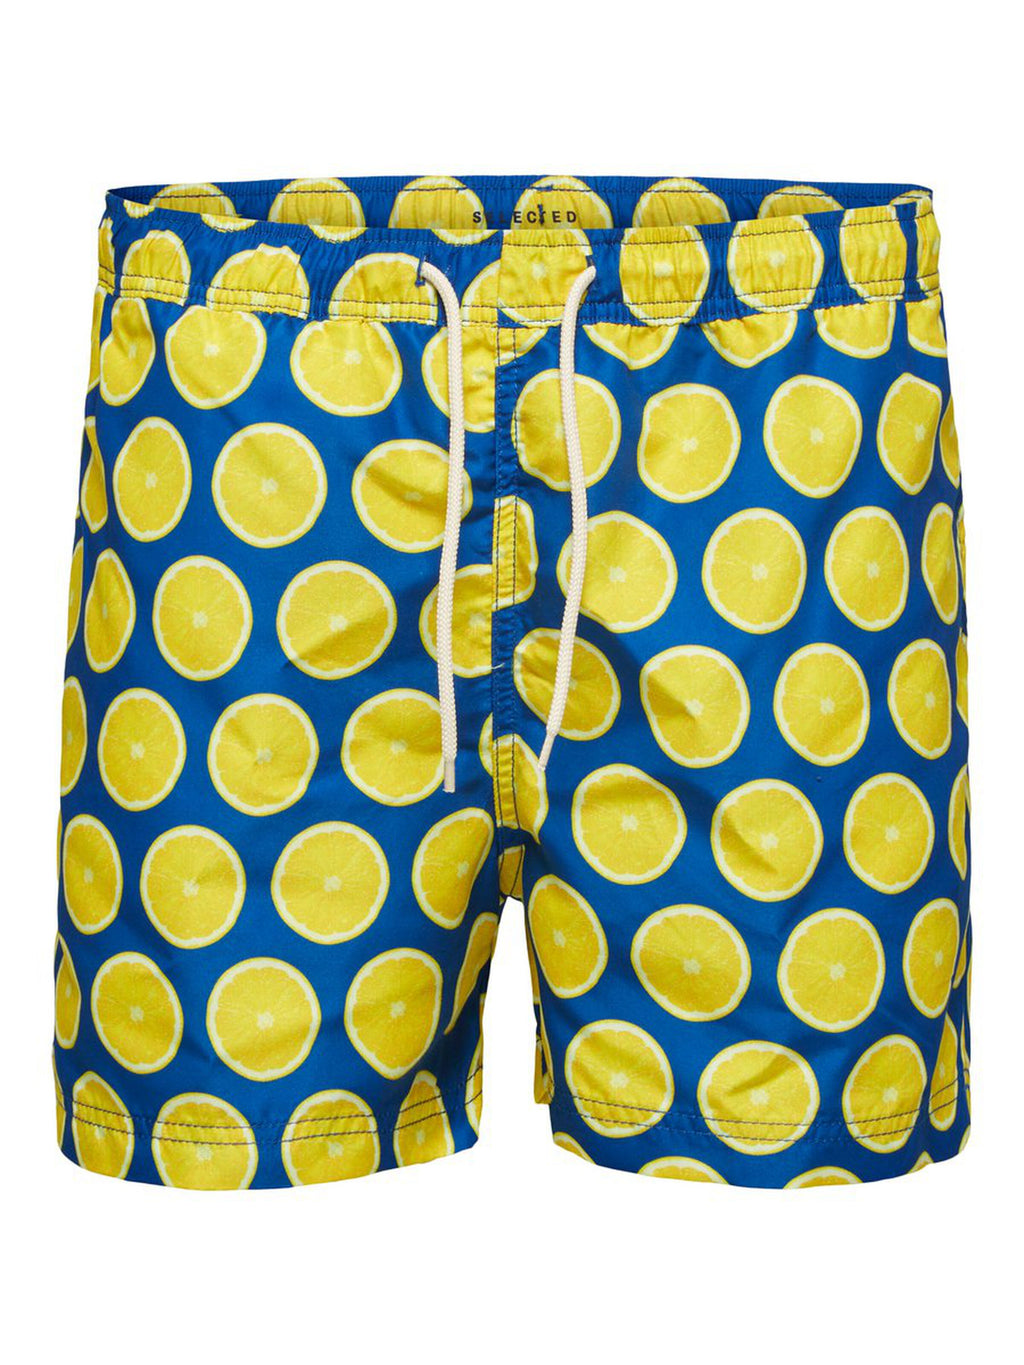 Printed Swim Shorts - Lemon / Blue